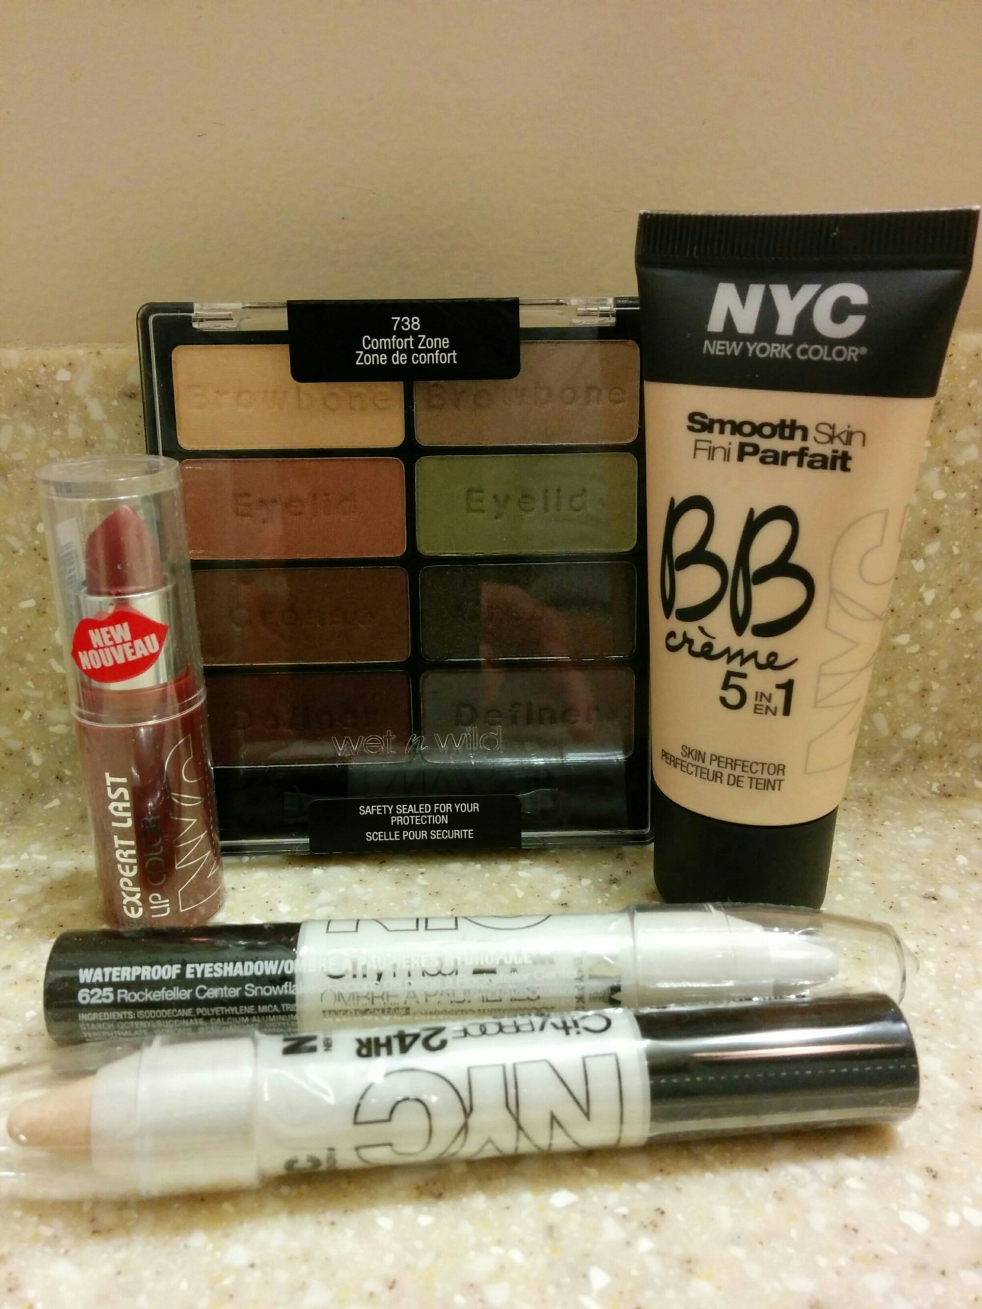 Target Mini Makeup Haul Review | lookingjoligood.wordpress.com